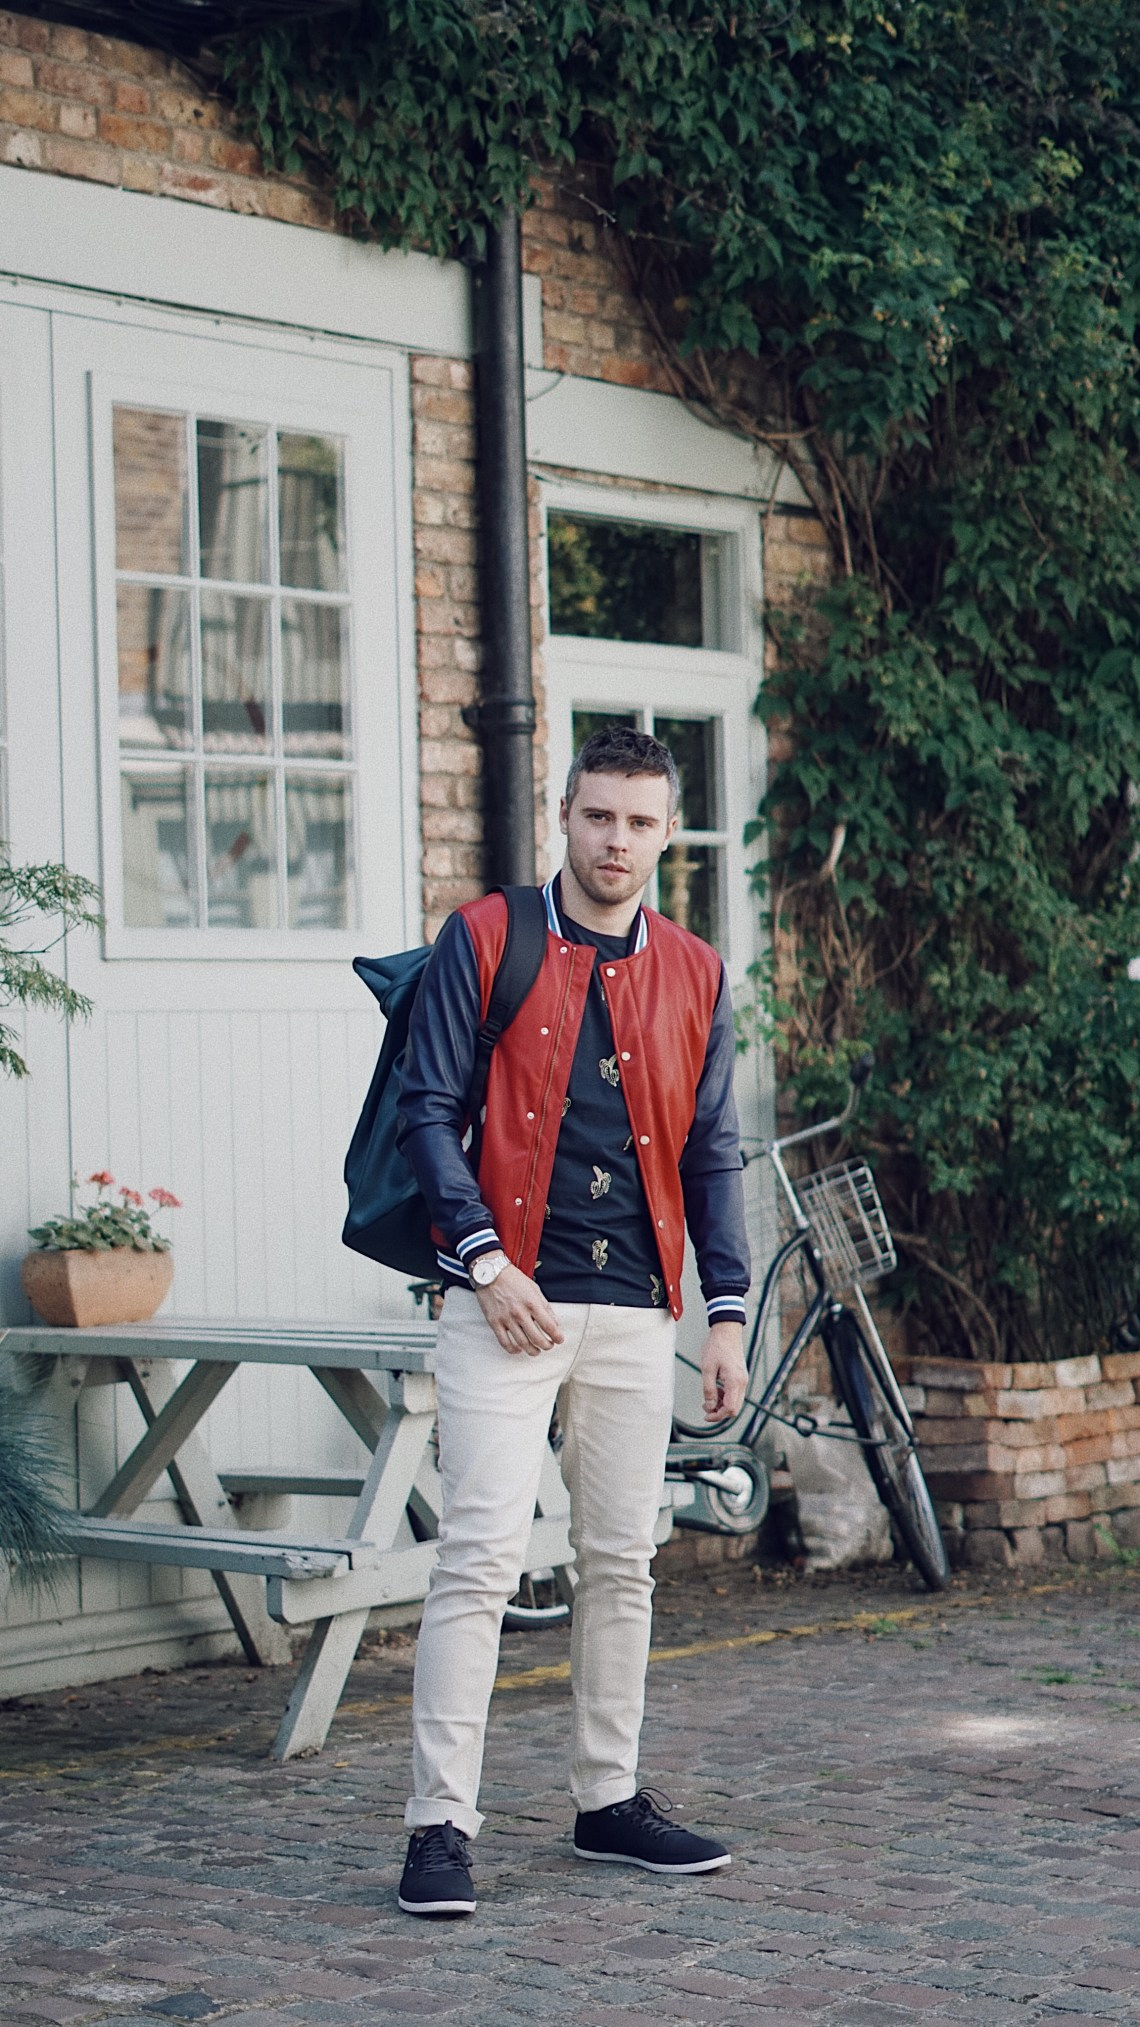 St Lukes Mews in Notting Hill. Wearing KRONABY Sweden Sekel Watch, Zara College Bomber Jacket and Printed Top in Navy Blue, PrimarkStone Twill Stretch Skinny Trouser and Boxfresh Shoes. Snapped by Ed Lemon from The Discerning Man. Blog by Skirmantas Petraitis